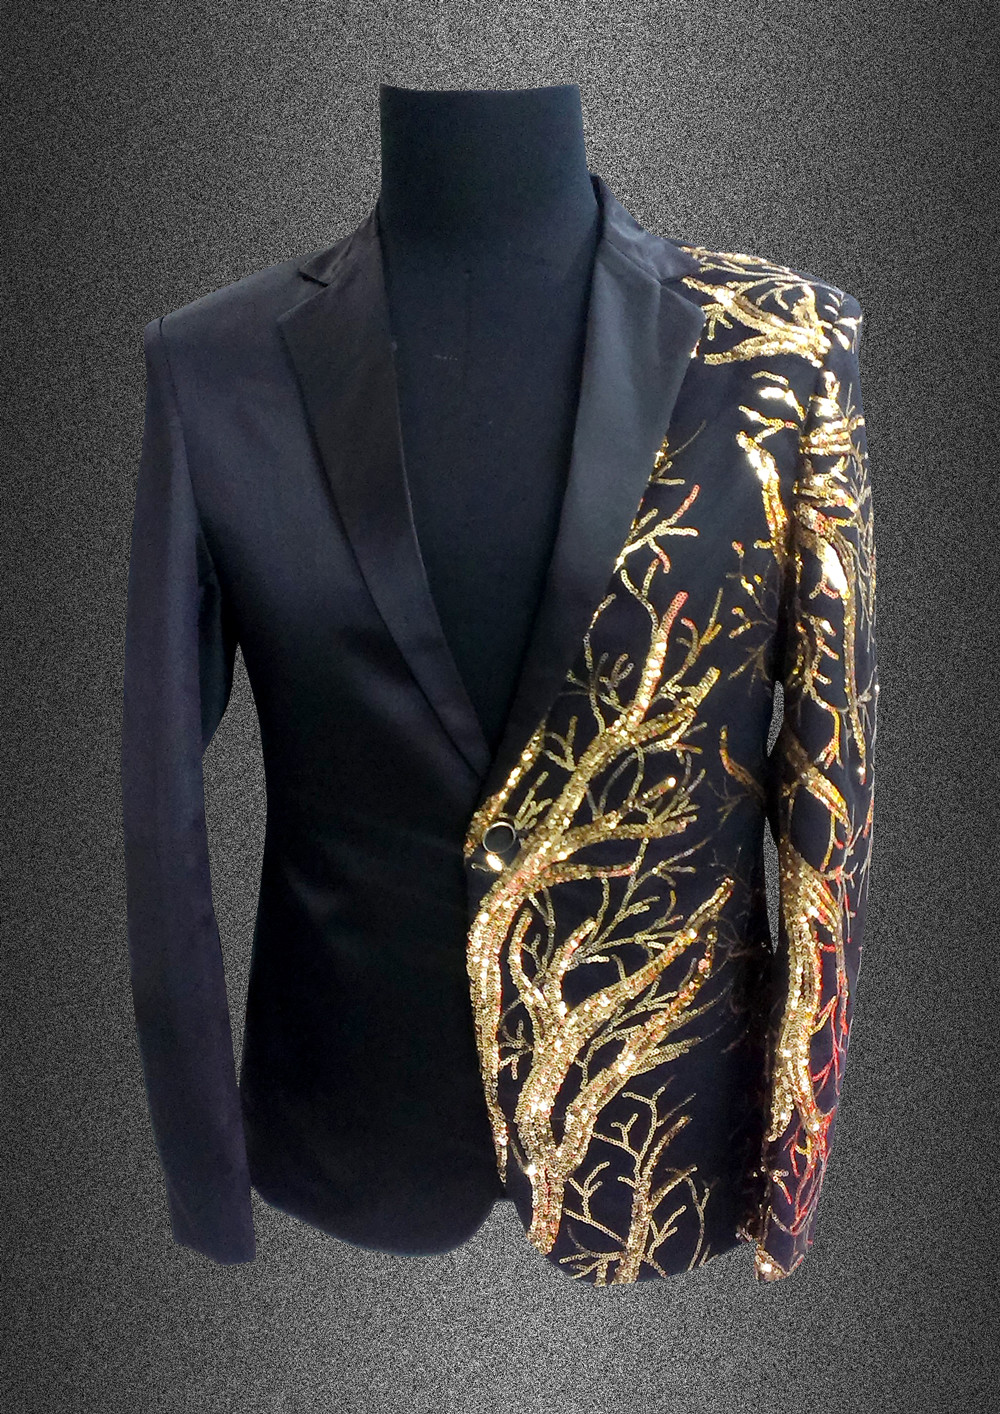 singer blazer Male formal dress costume men's clothing paillette suits clothes for dancer star performance nightclub party bar 2